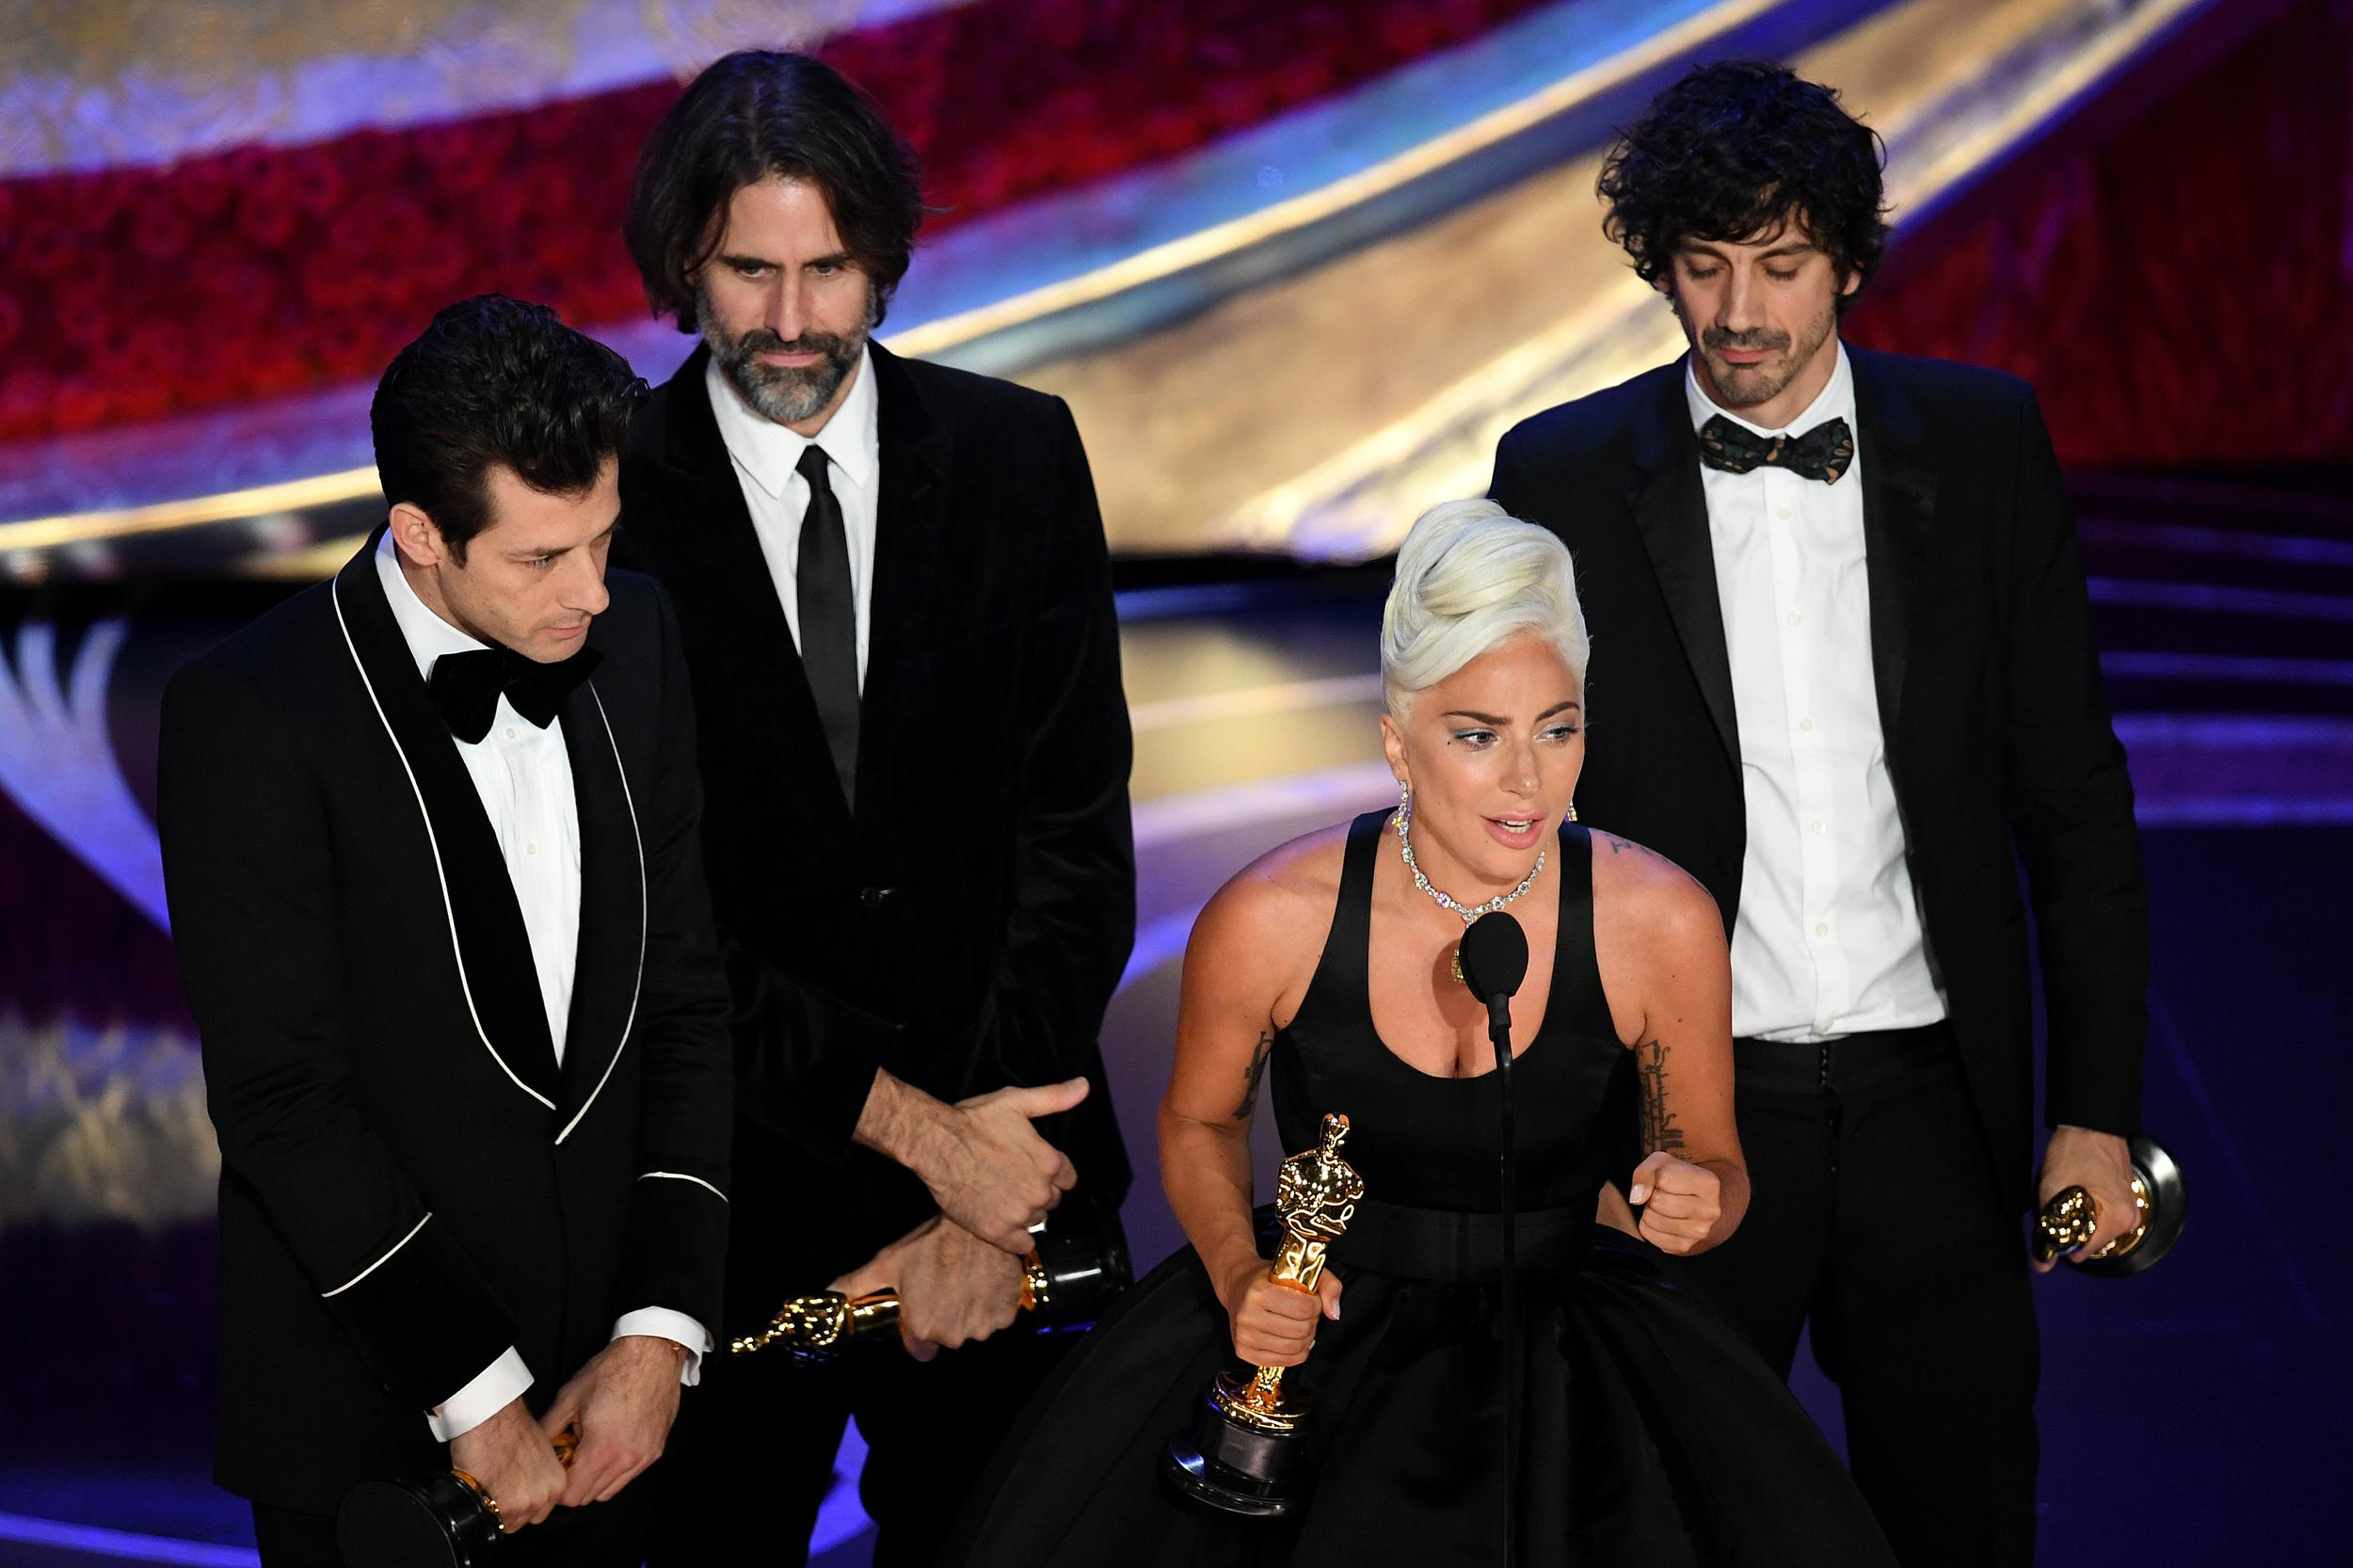 HOLLYWOOD, CALIFORNIA - FEBRUARY 24: (L-R) Mark Ronson, Andrew Wyatt, Lady Gaga, and Anthony Rossomando accept the Music (Original Song) award for 'Shallow' from 'A Star Is Born' onstage during the 91st Annual Academy Awards at Dolby Theatre on February 24, 2019 in Hollywood, California. (Photo by Kevin Winter/Getty Images)